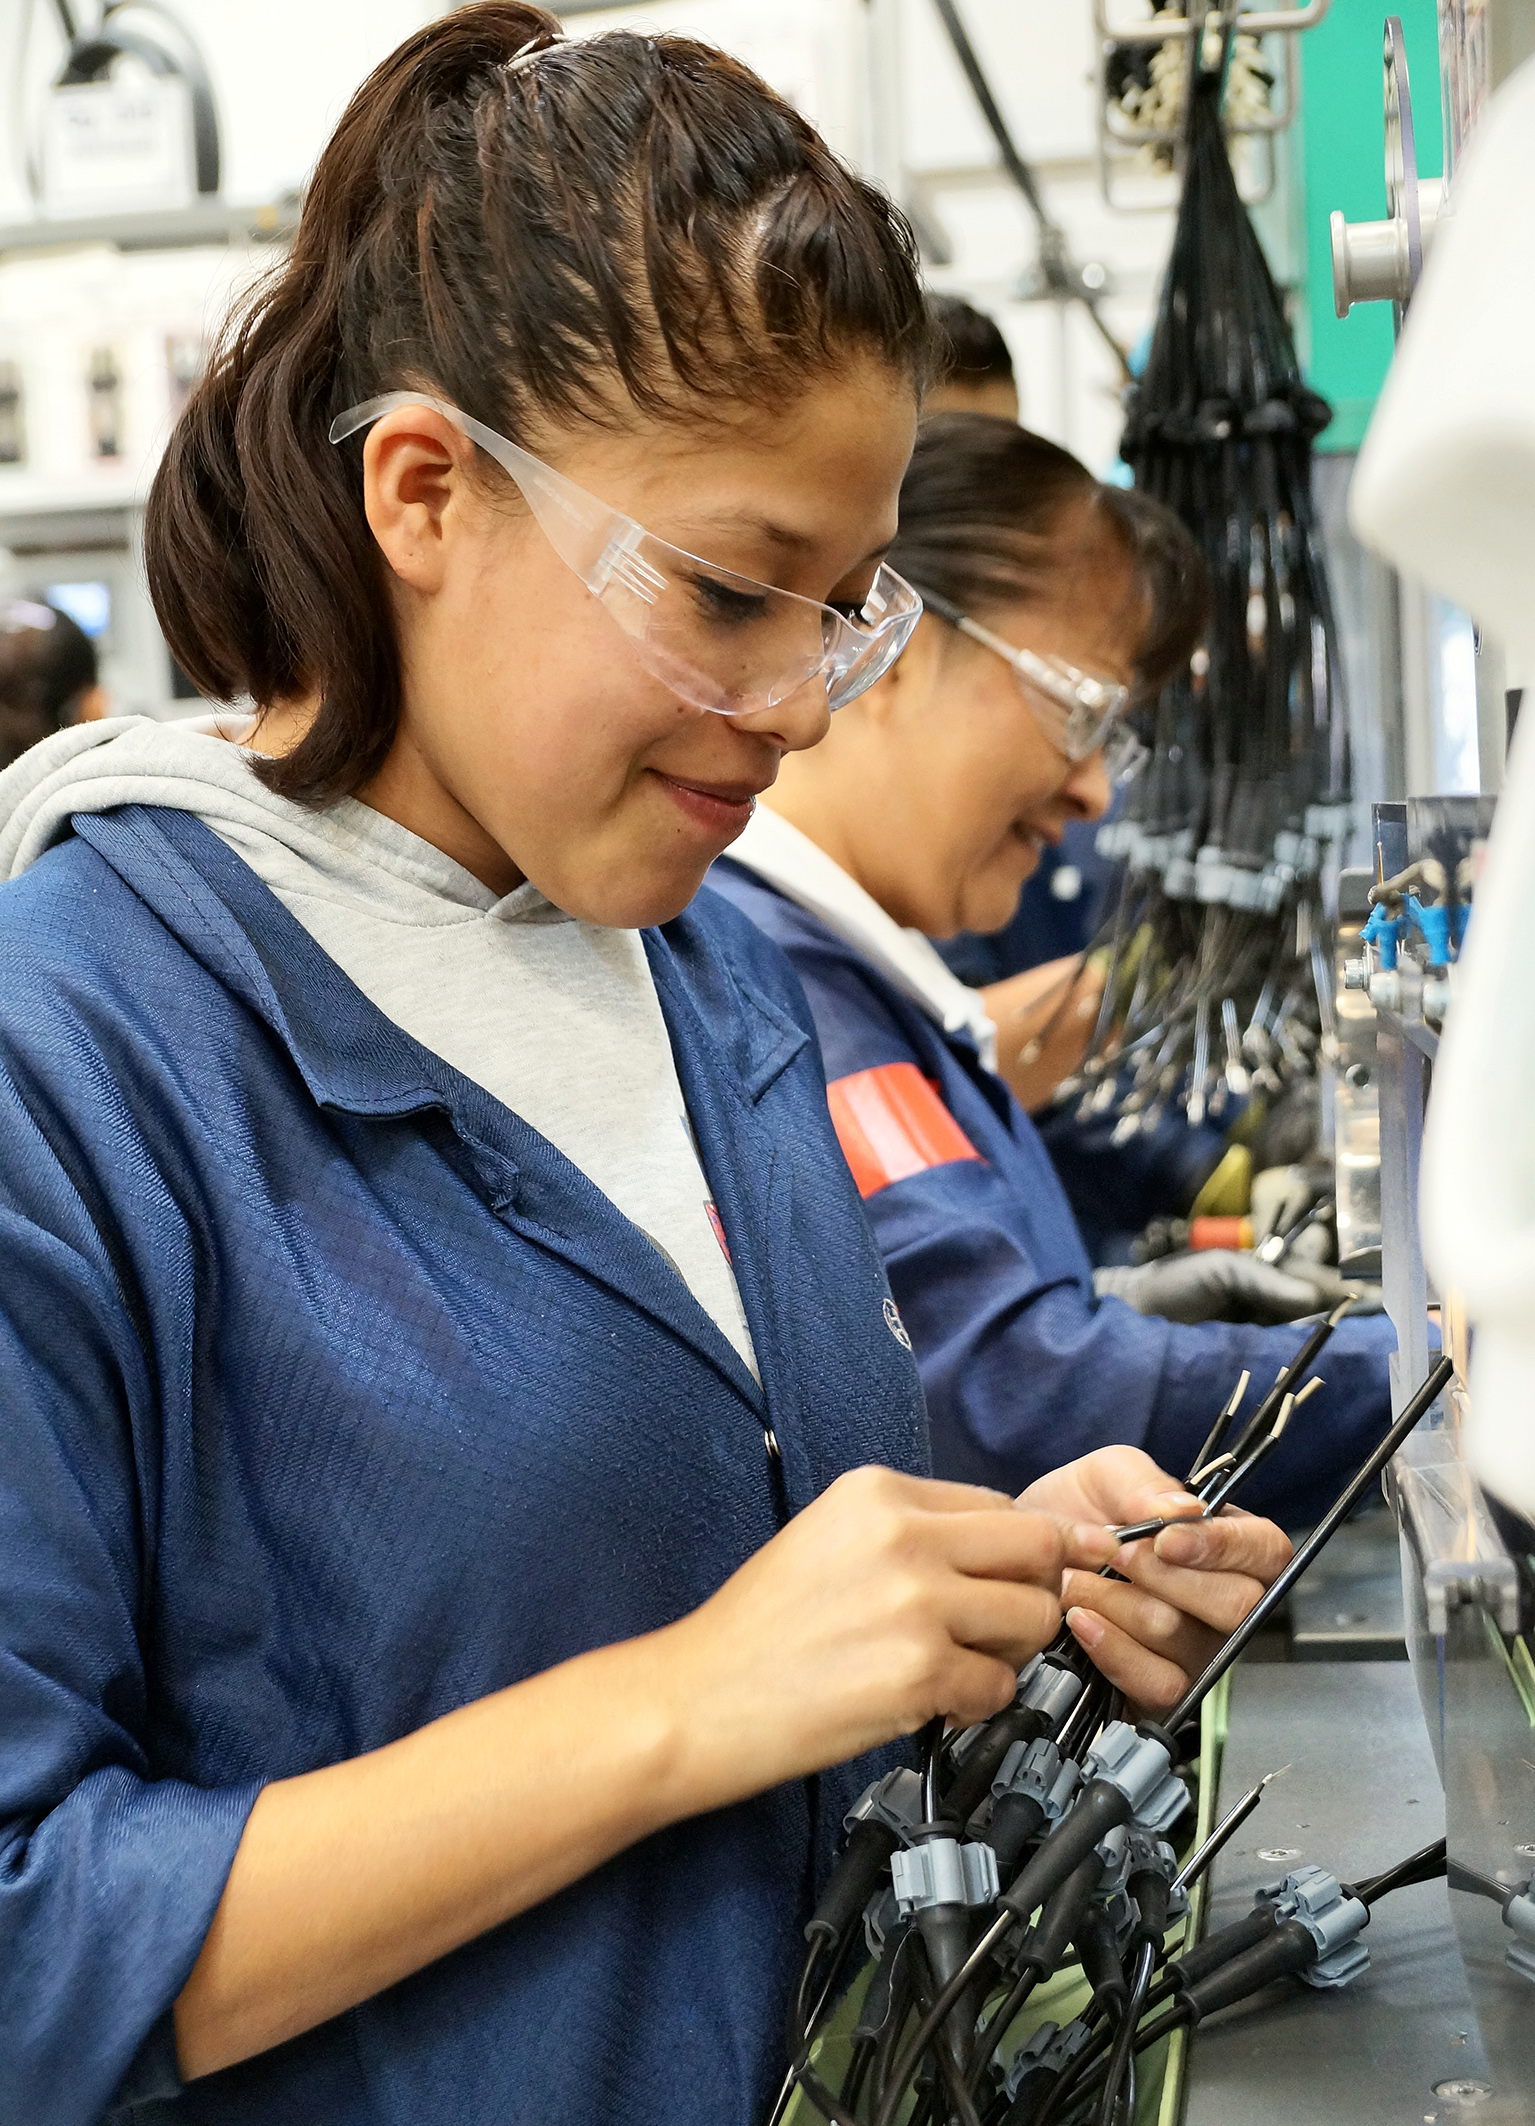 Bosch is present with in Mexico with 16,000 associates at ten locations